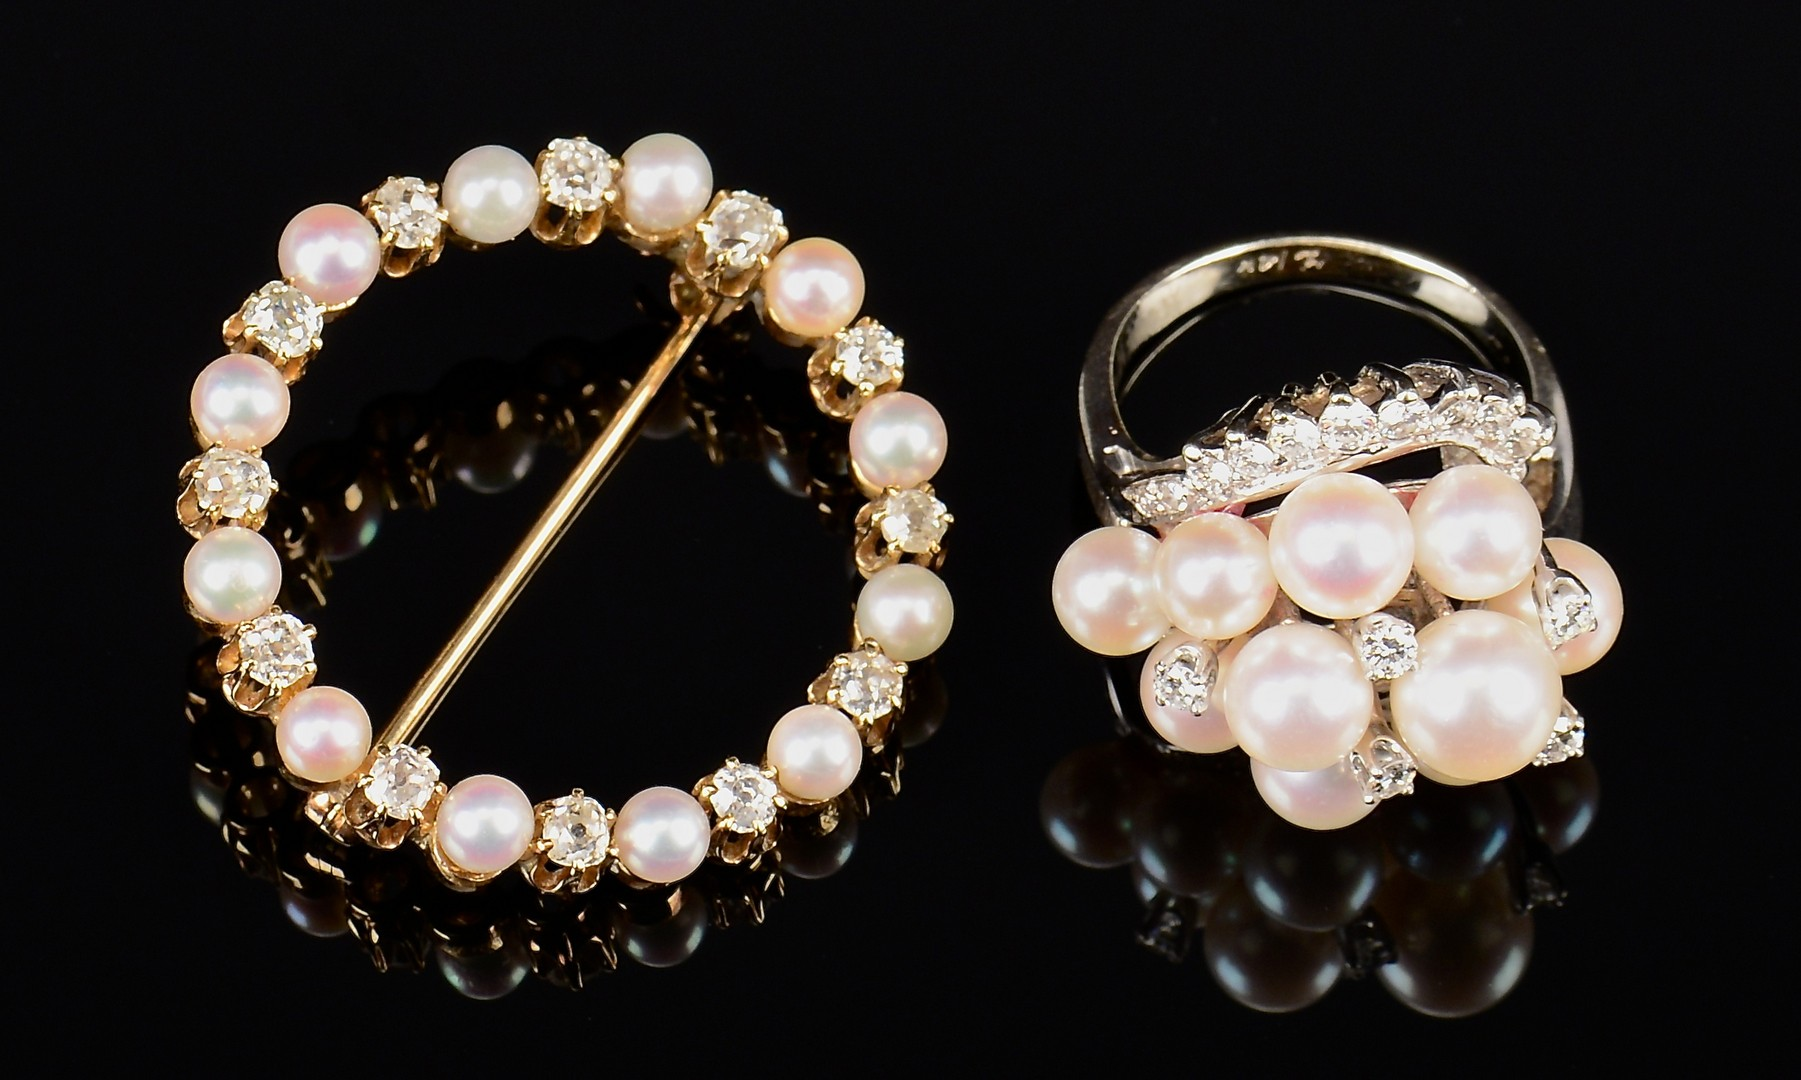 Lot 351: 2 14k Diamond & Pearl Jewelry Items